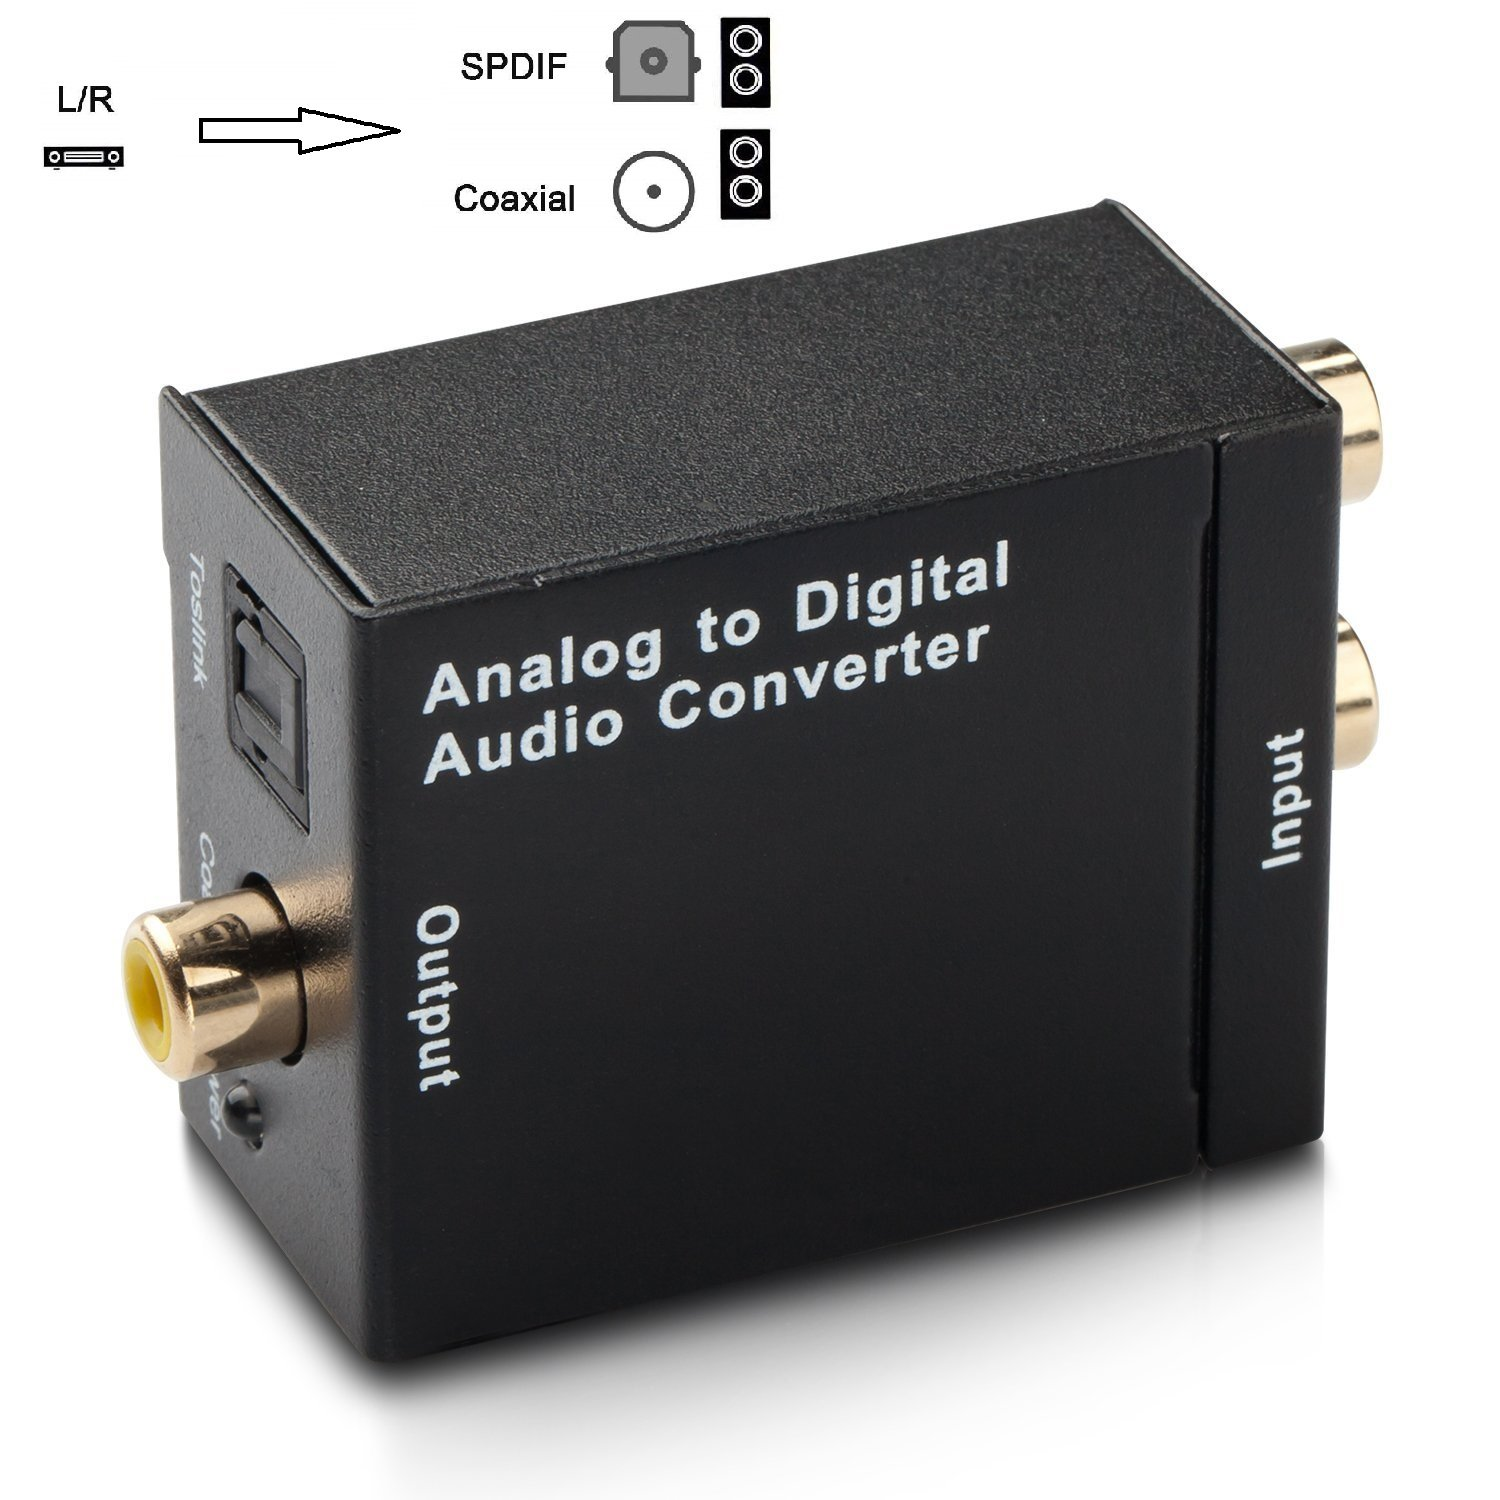 Cingk RCA L/R Analog To Digital Optical SPDIF Coaxial Audio Converter Adapter with Toslink Cable and Power Adapter